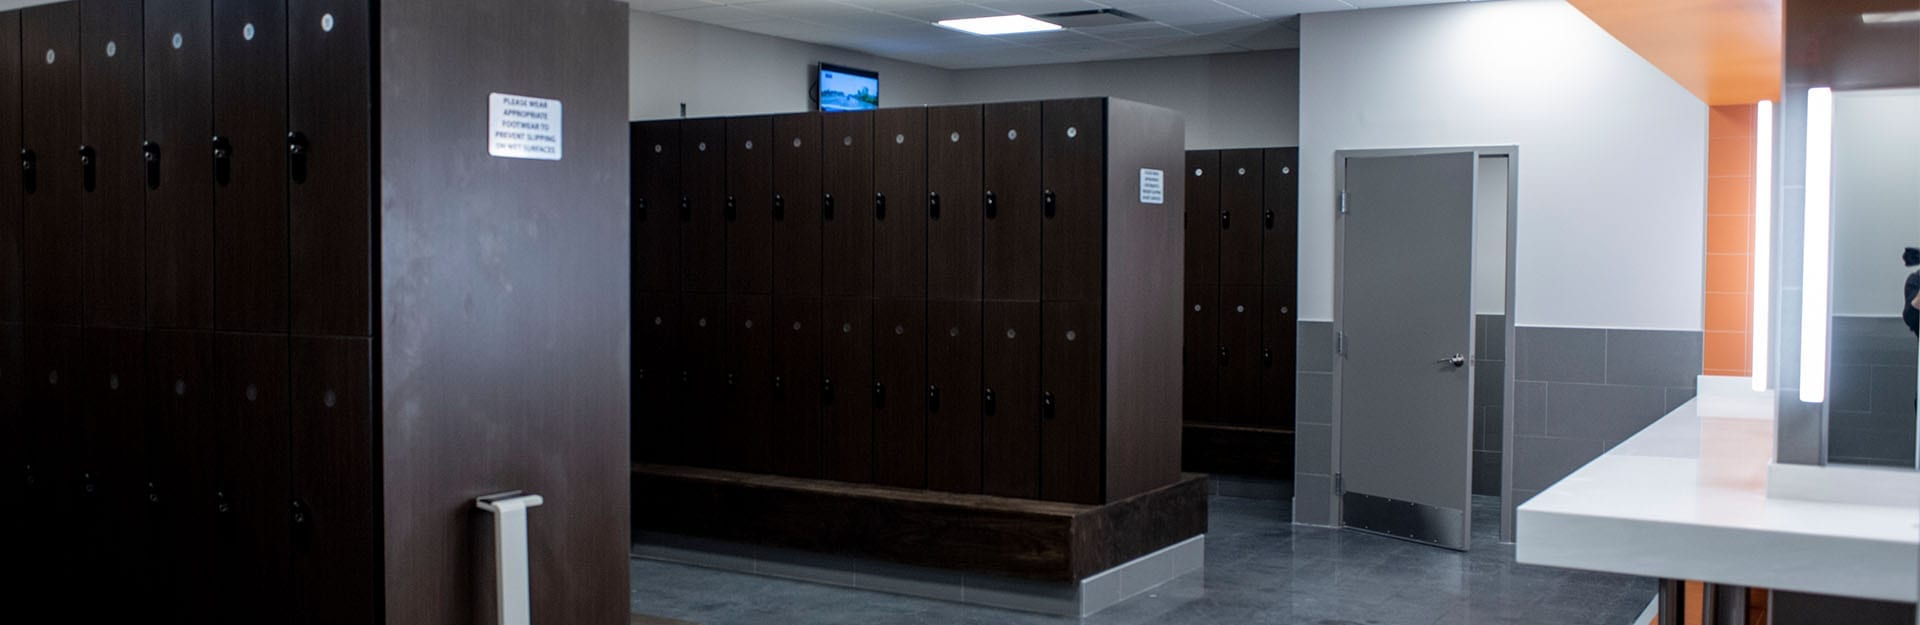 very clean and modern locker room facility